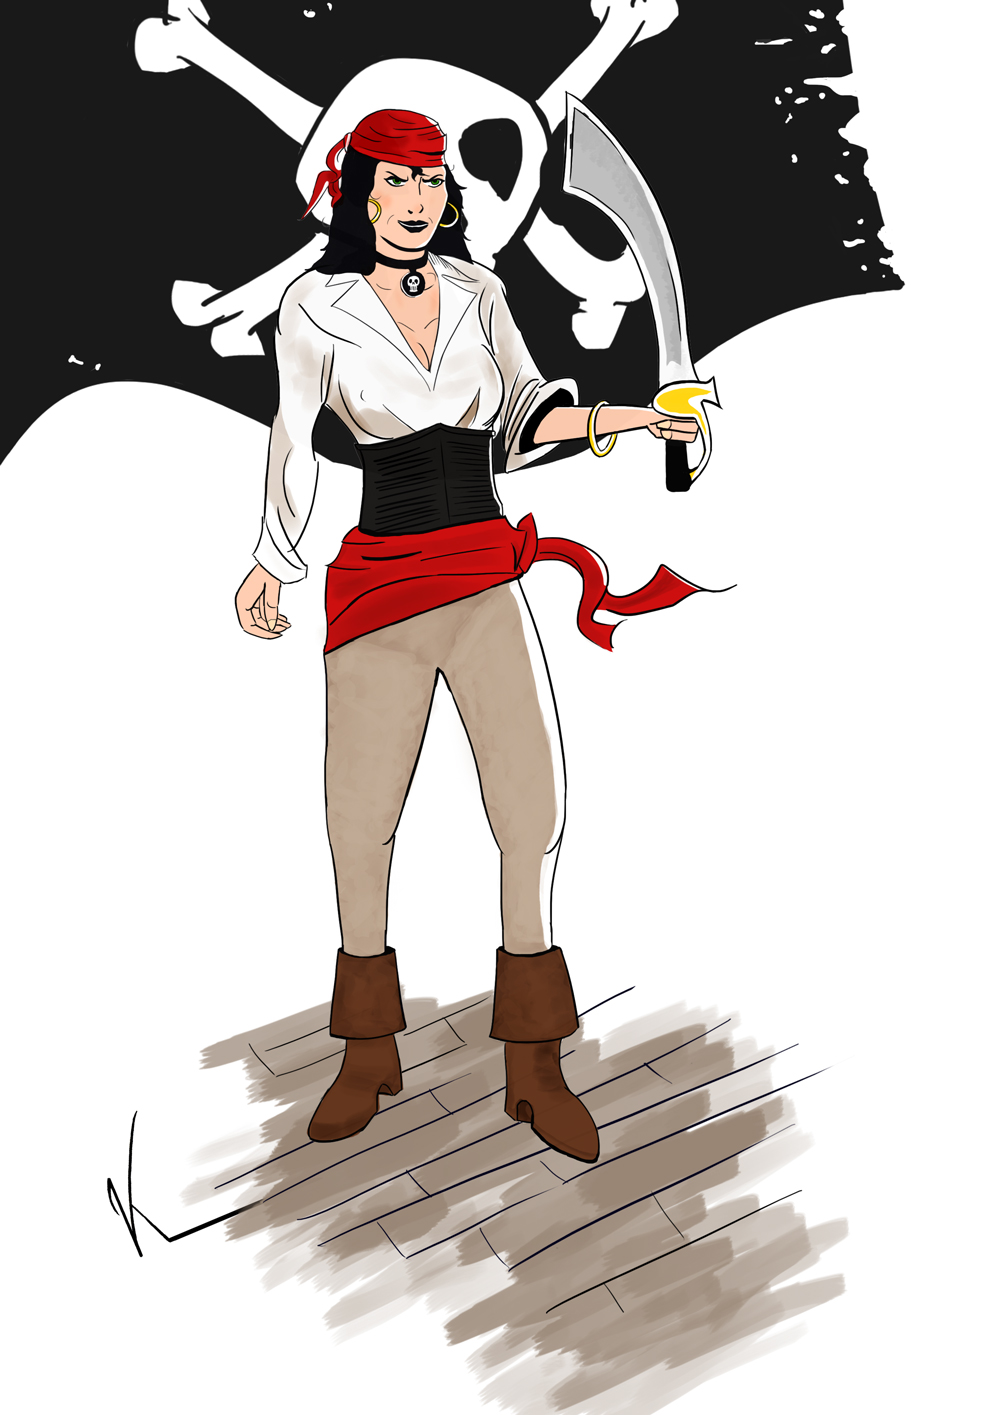 Pirate lass by Verhelm